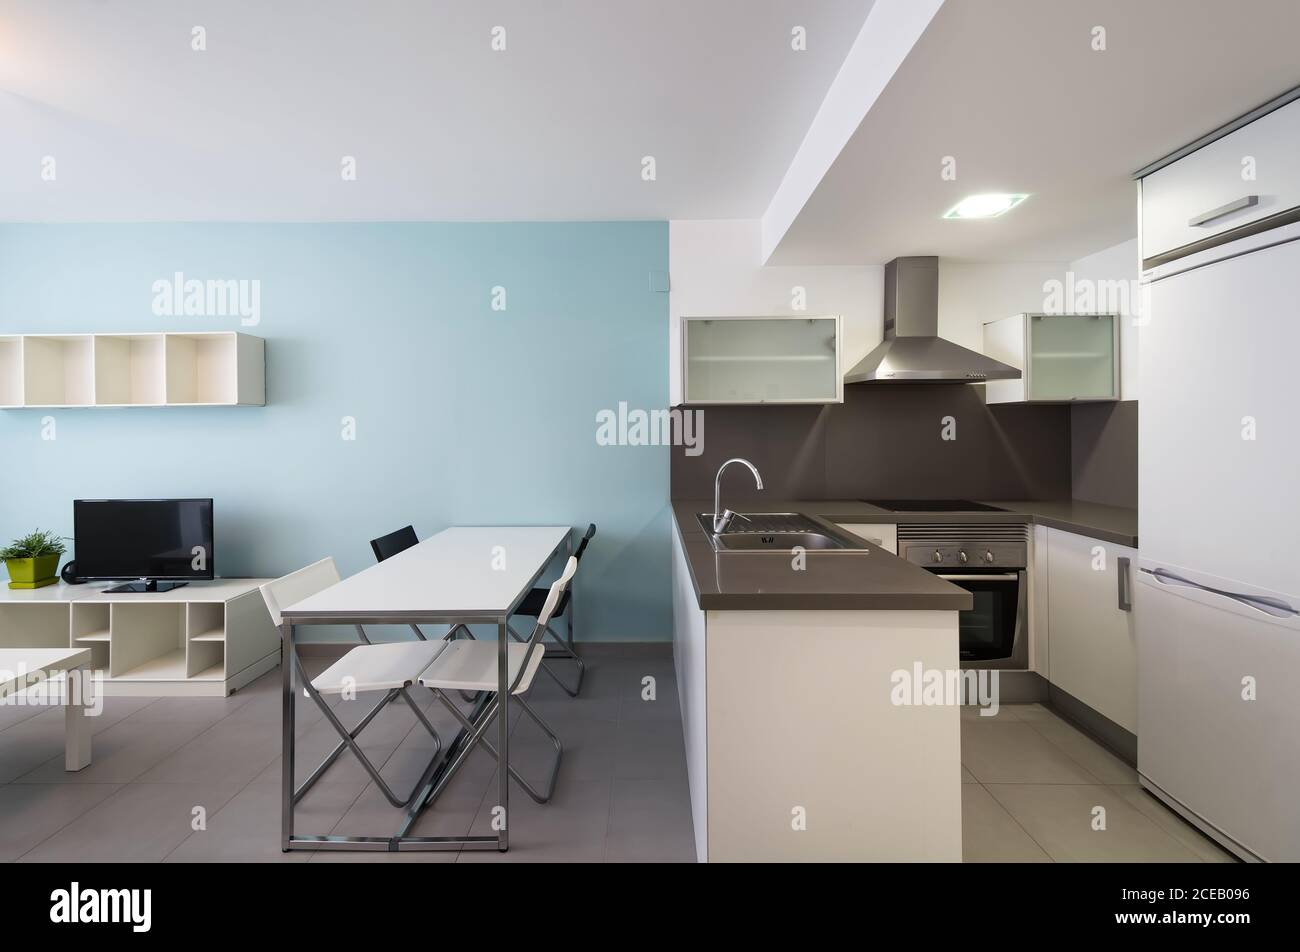 Small Kitchen Zone In Modern Studio Apartment With Nice Furniture Stock Photo Alamy